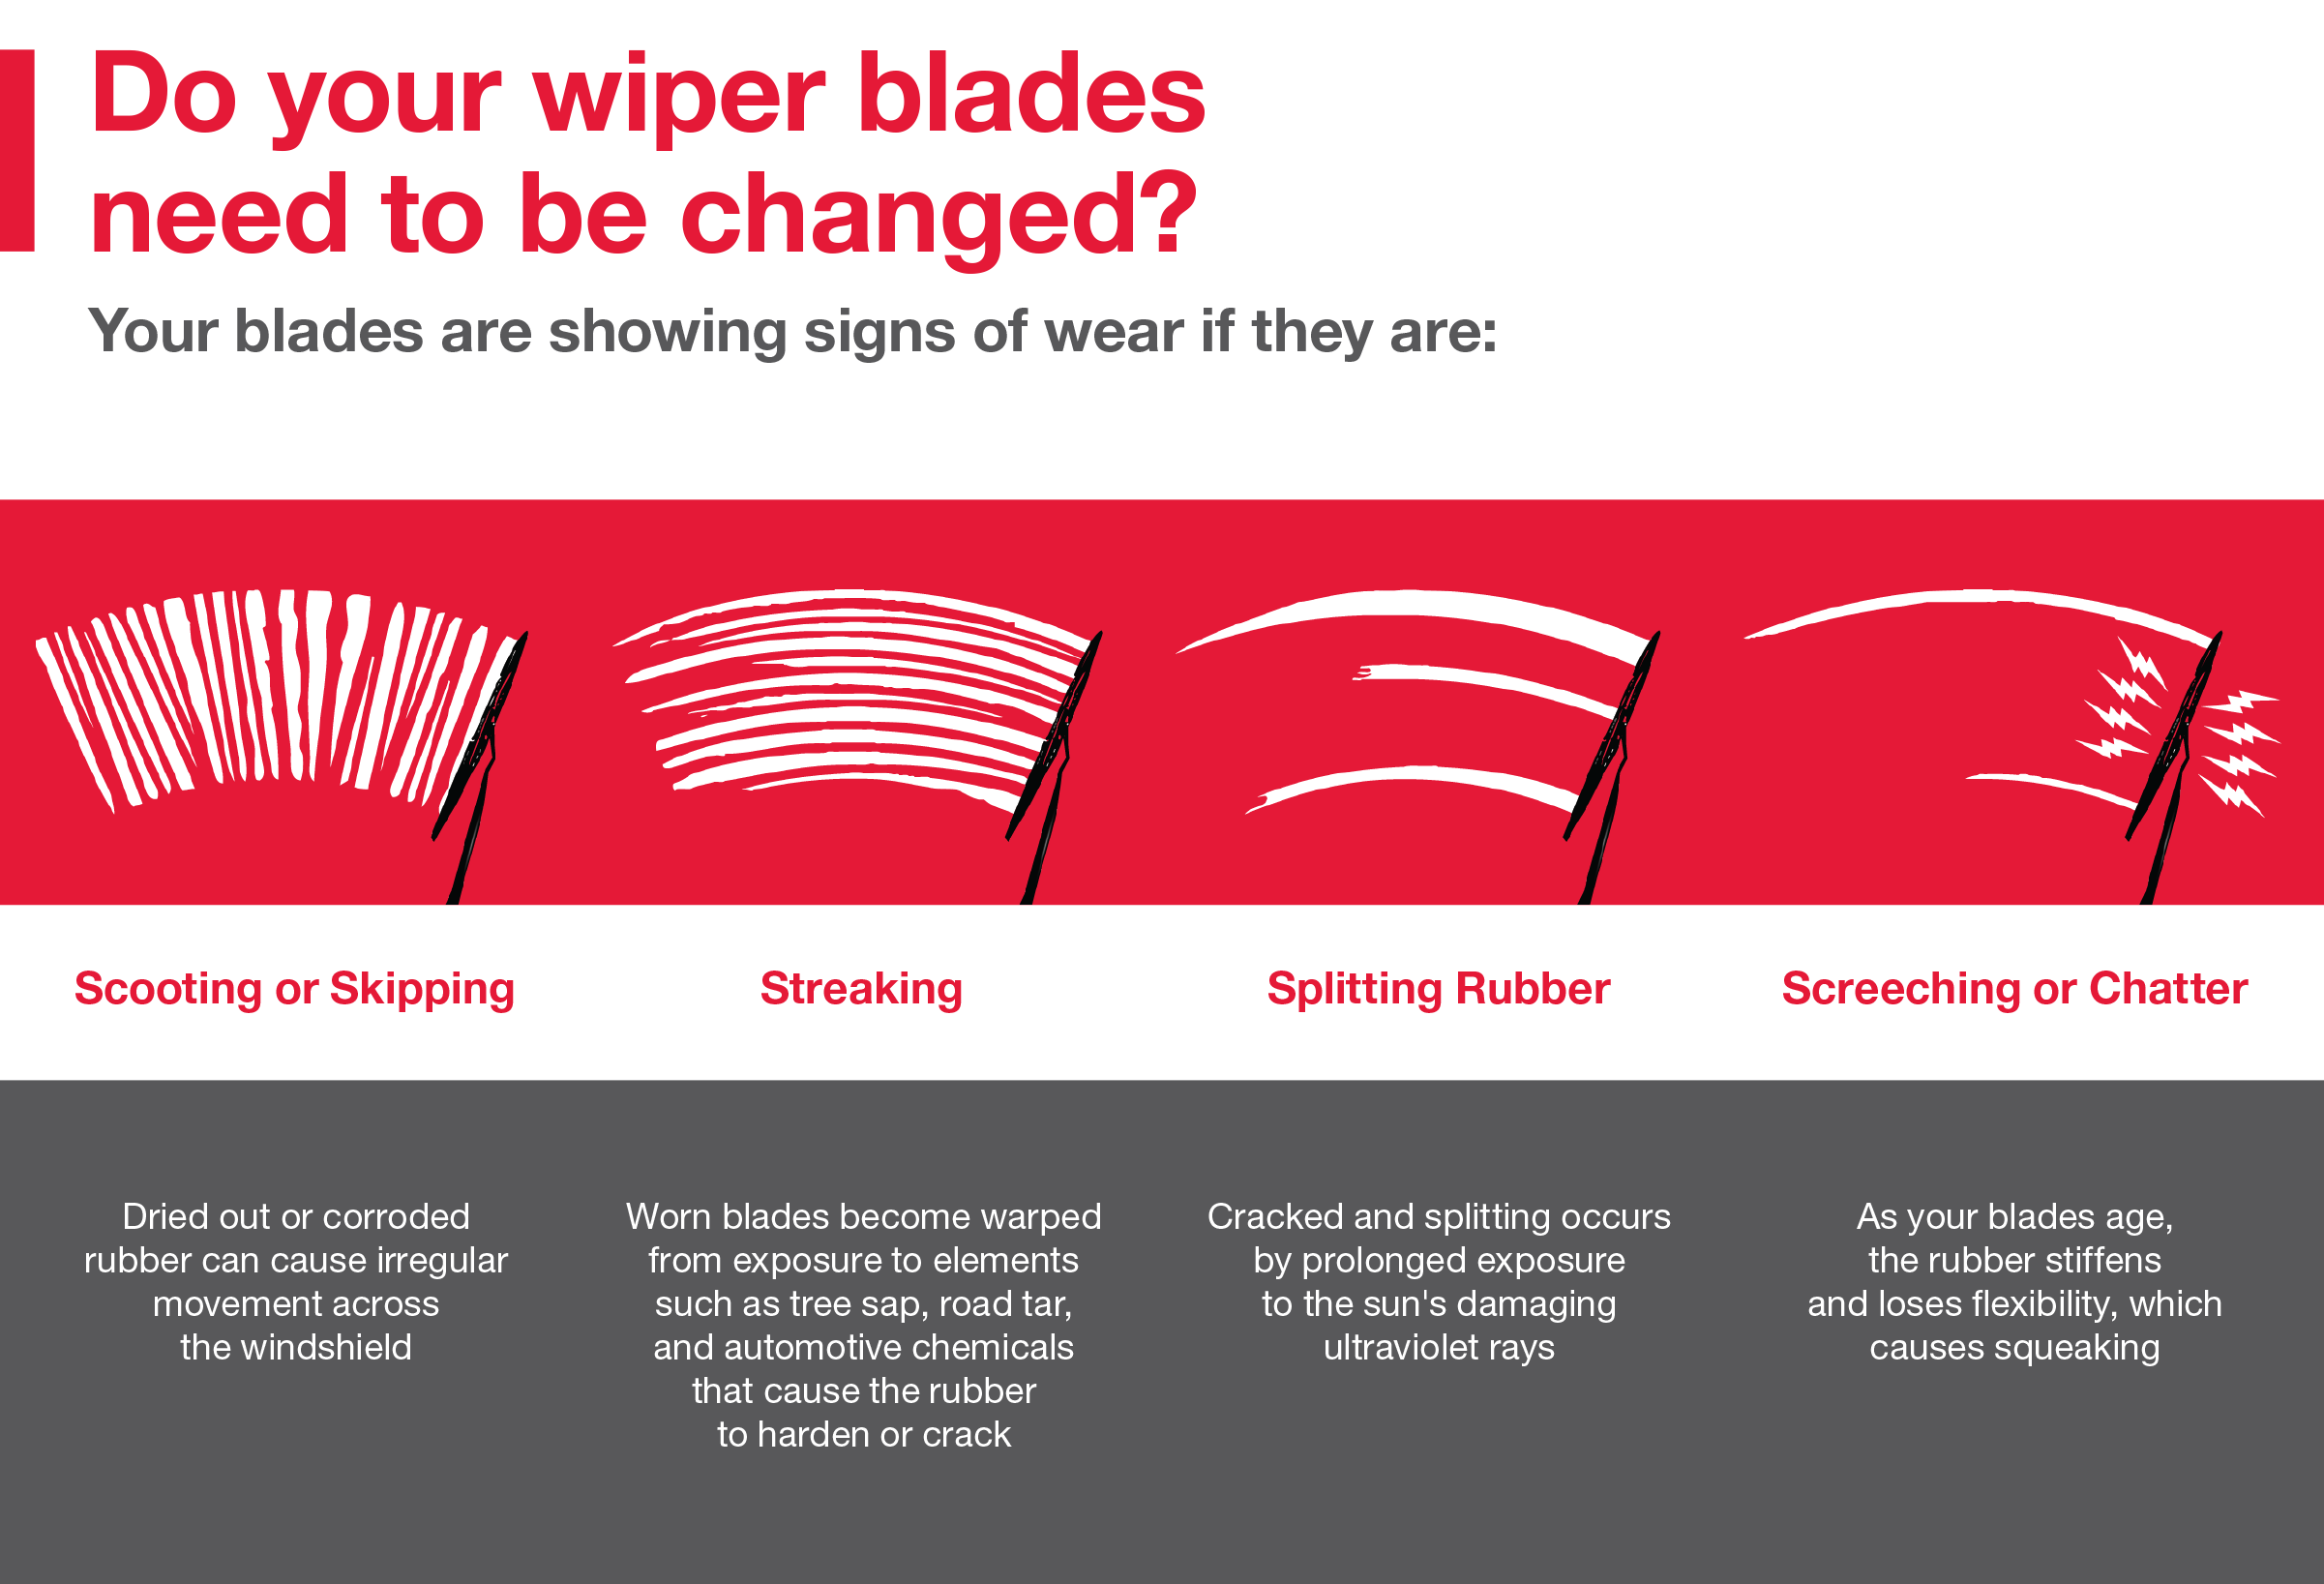 Do your wiper blades need to be changed? Call your local dealer for more info: 603-484-8164